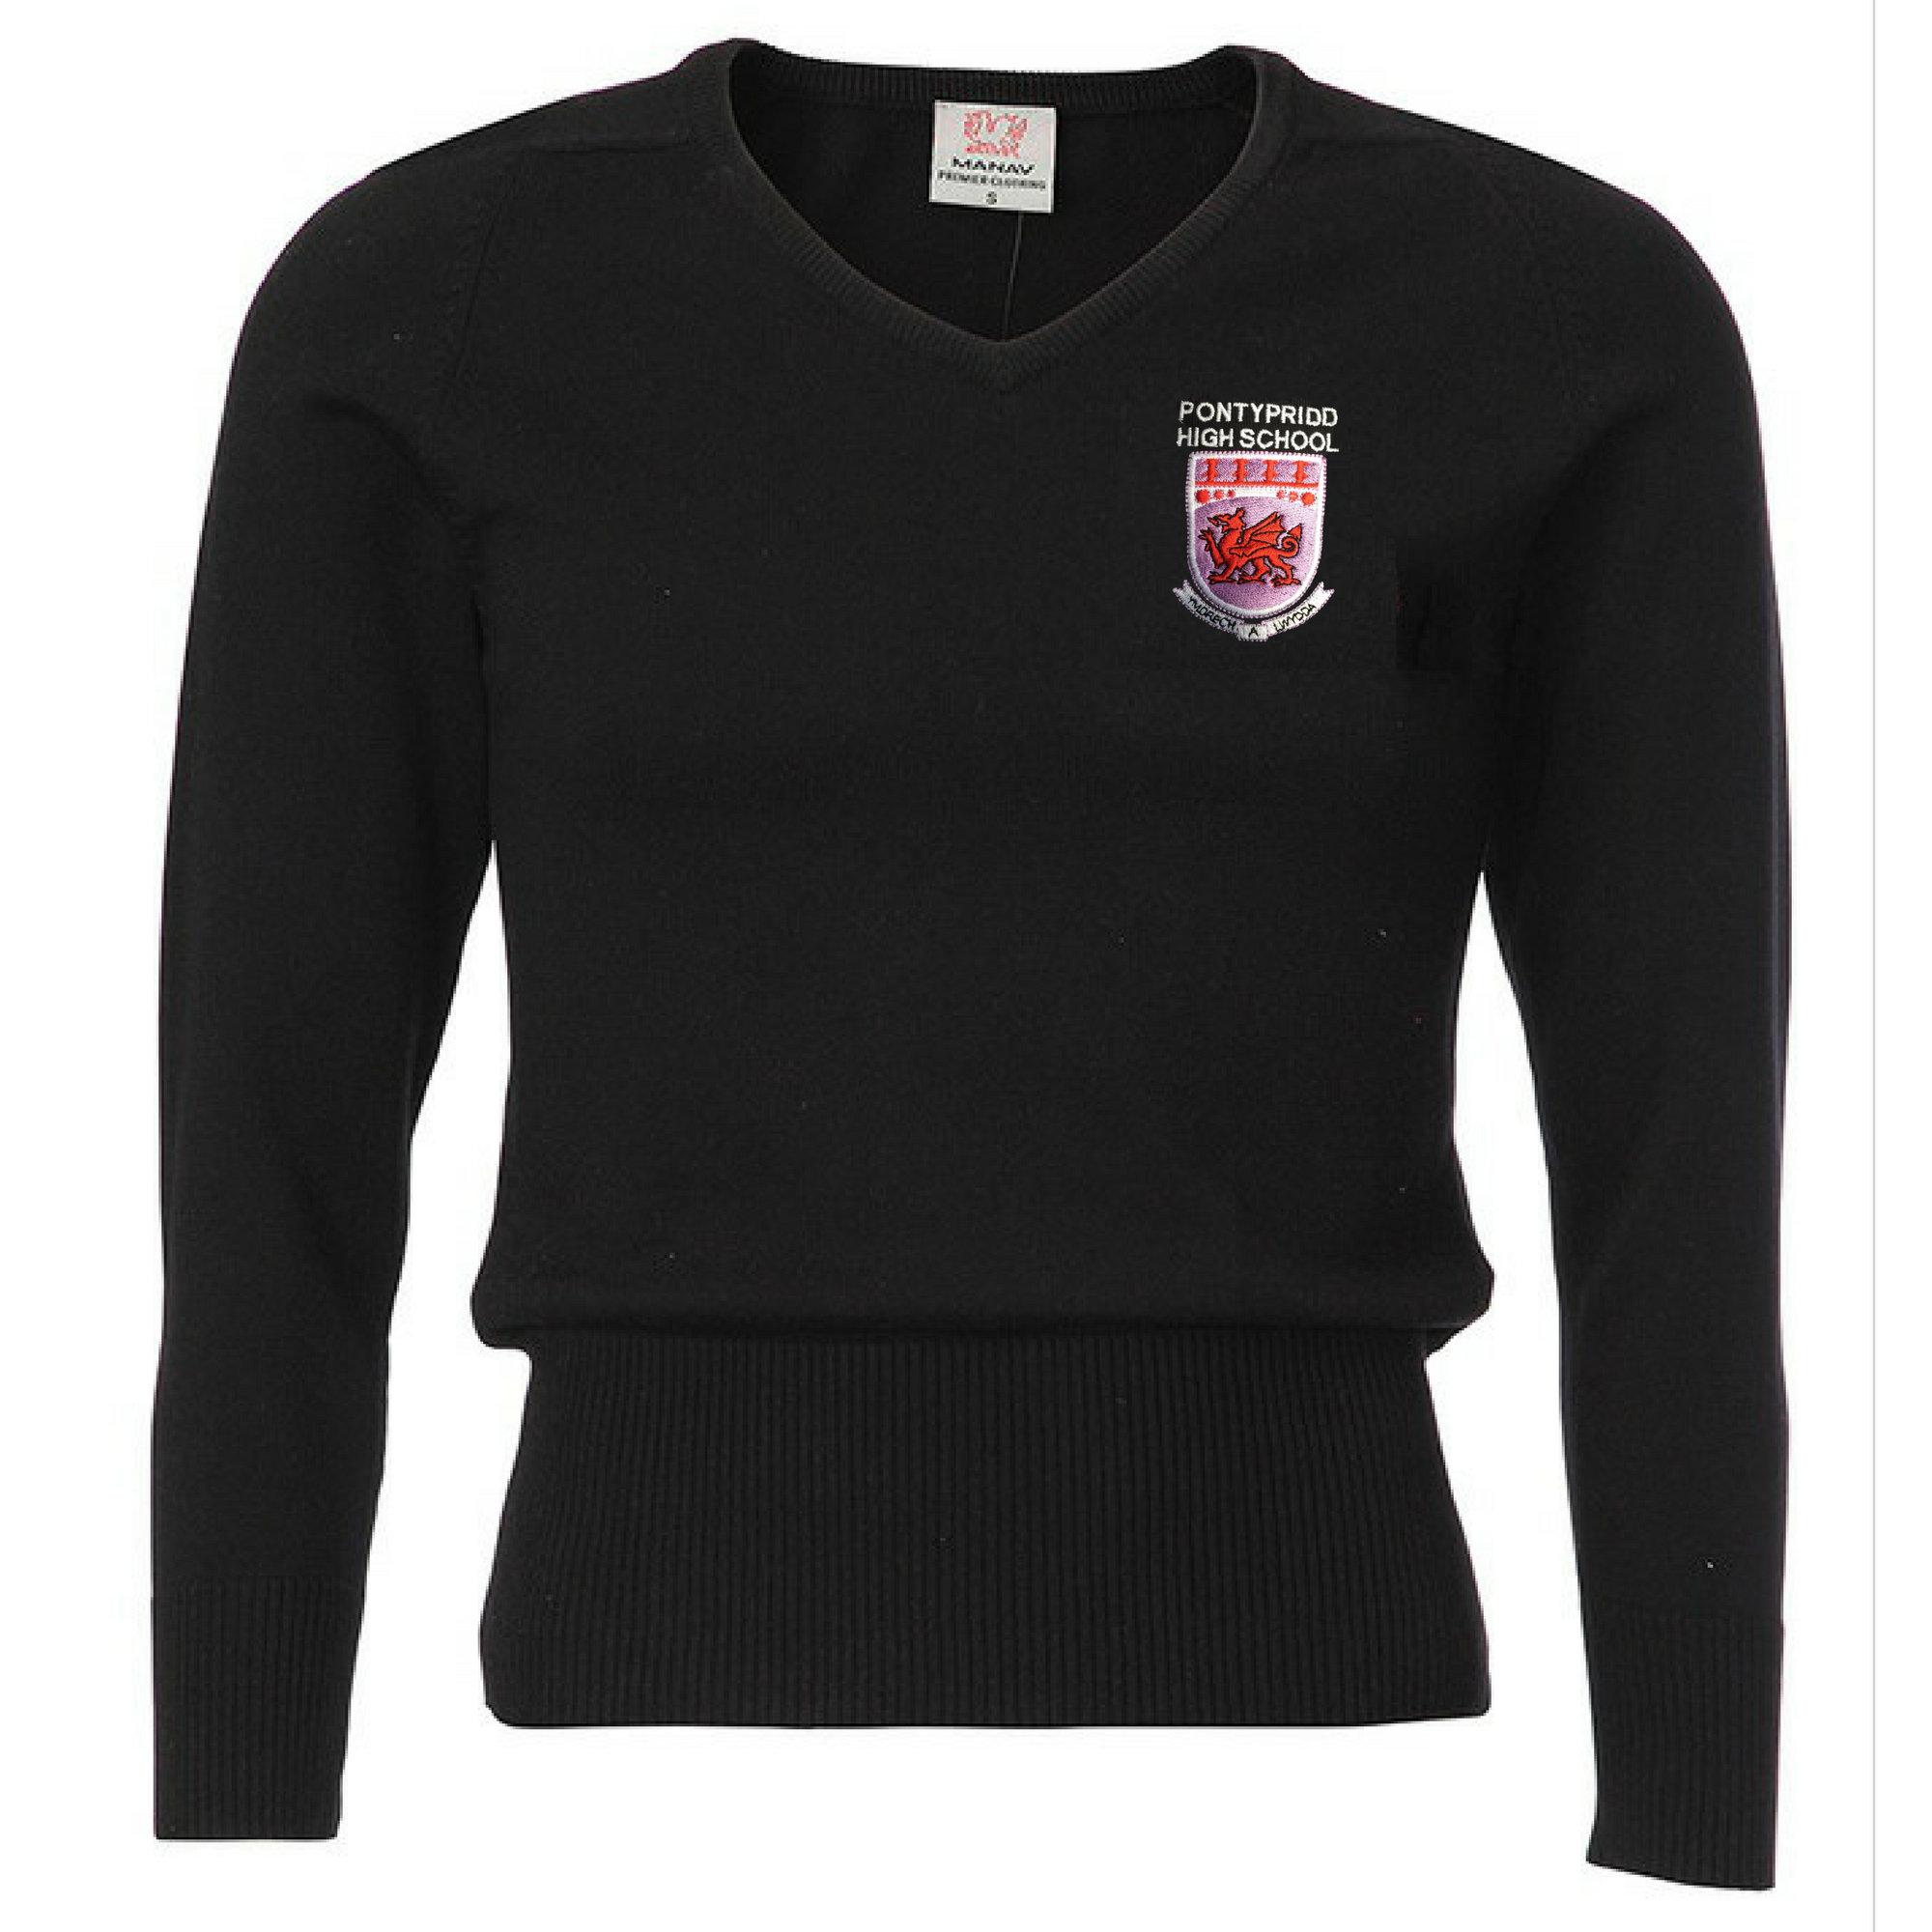 Pontypridd High School Girls V-Neck Jumper